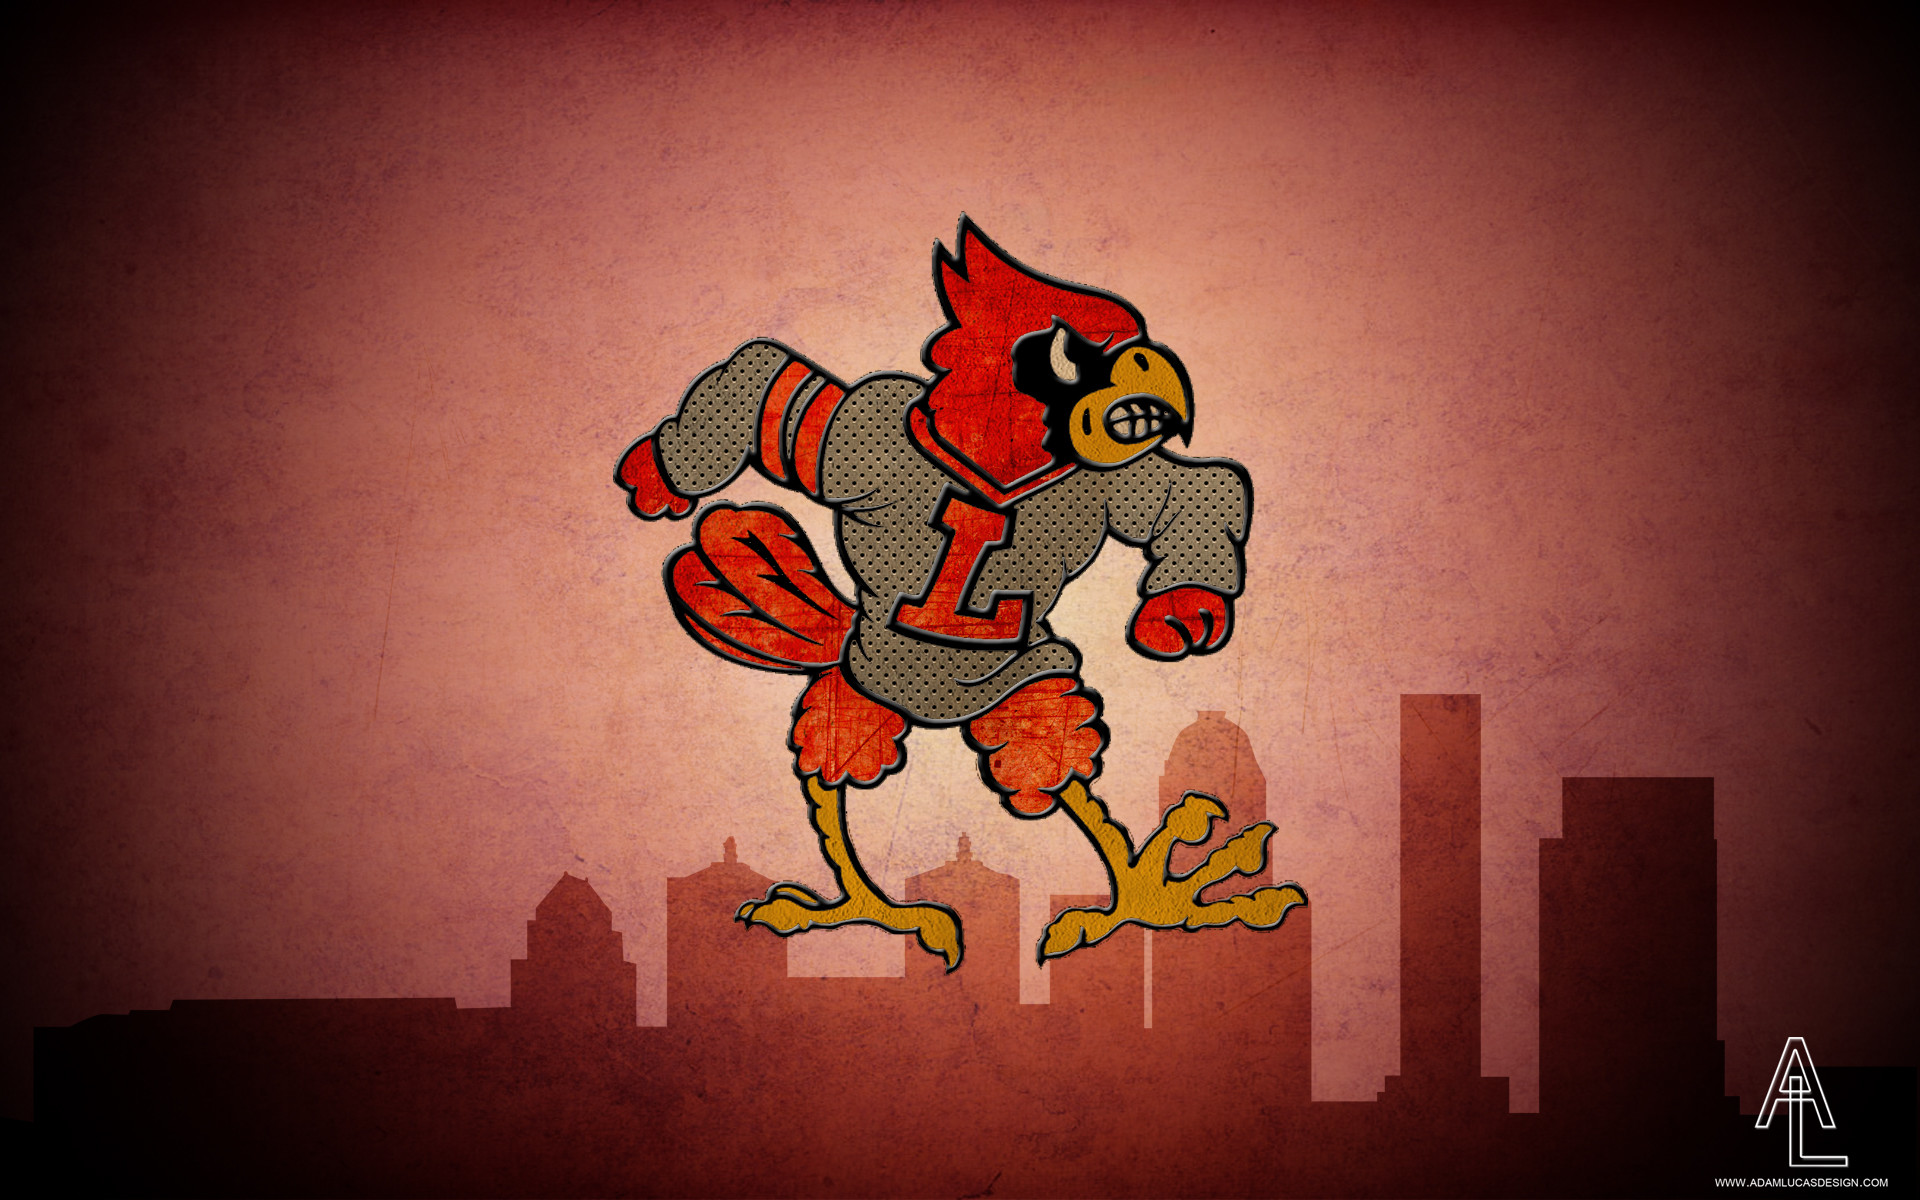 1920x1200 scores, is Louisville Cardinal Desktop Wallpaper valuable resource .